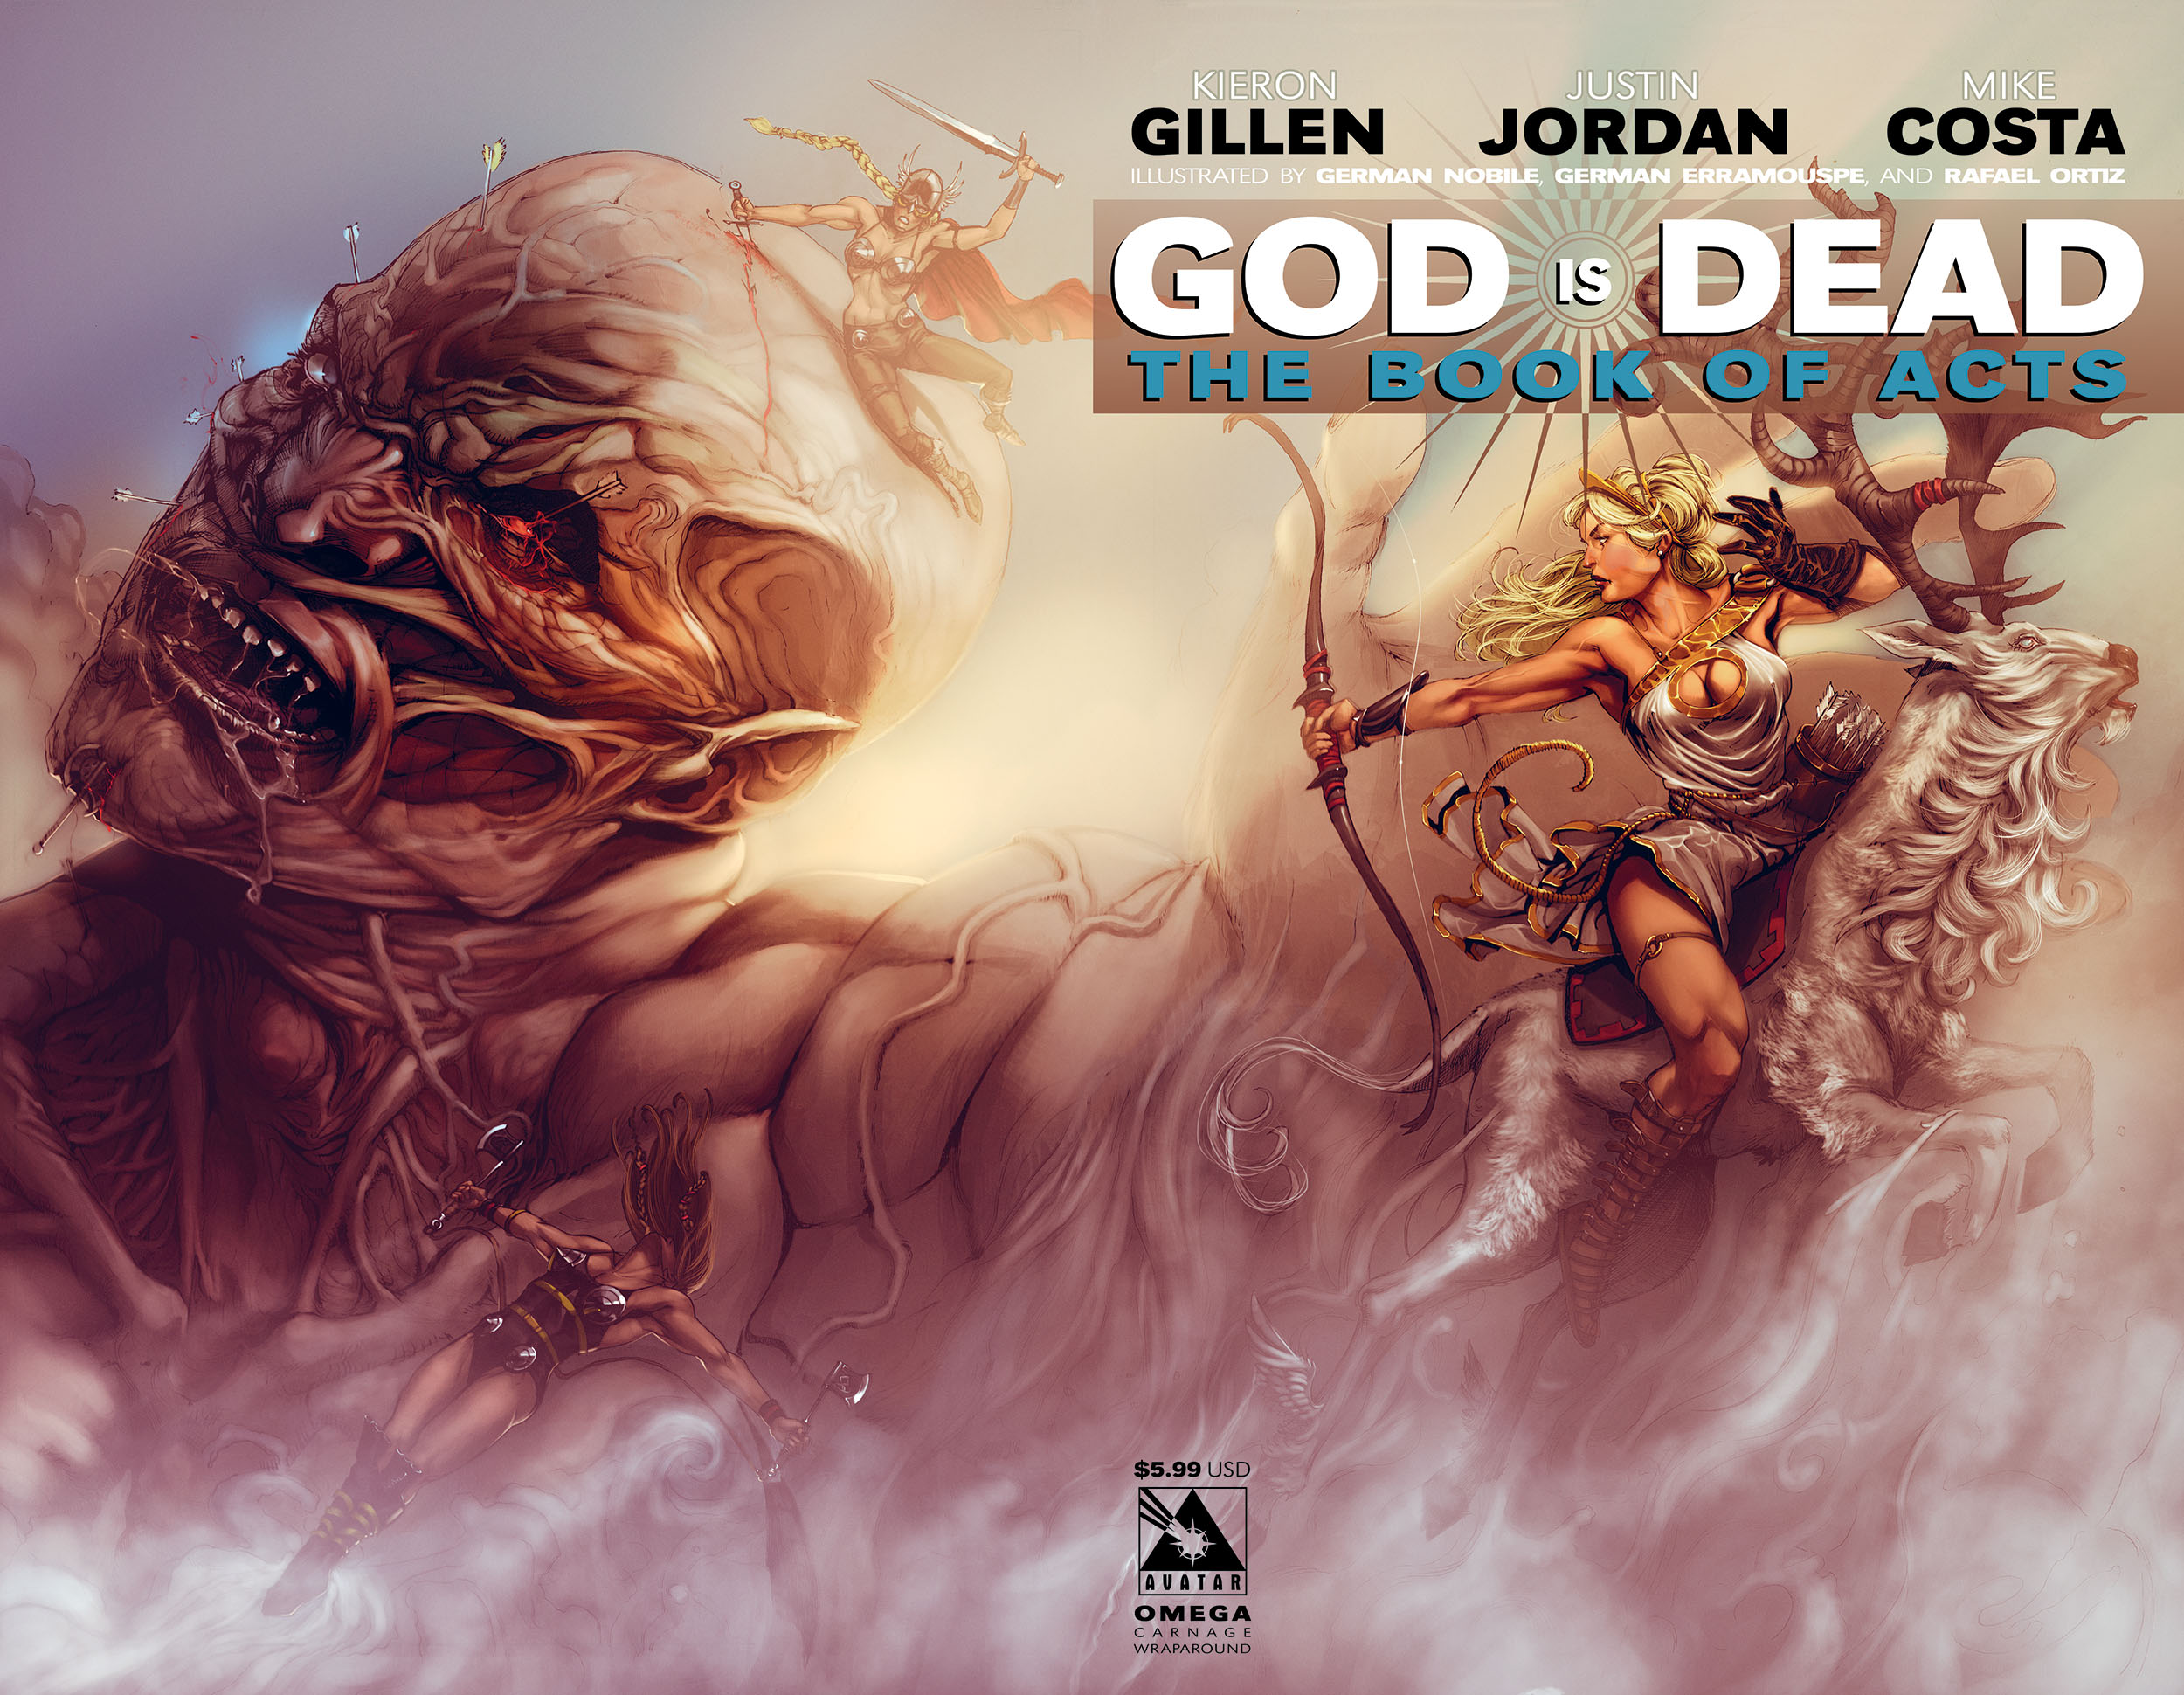 Read online God is Dead: Book of Acts comic -  Issue # Omega - 7